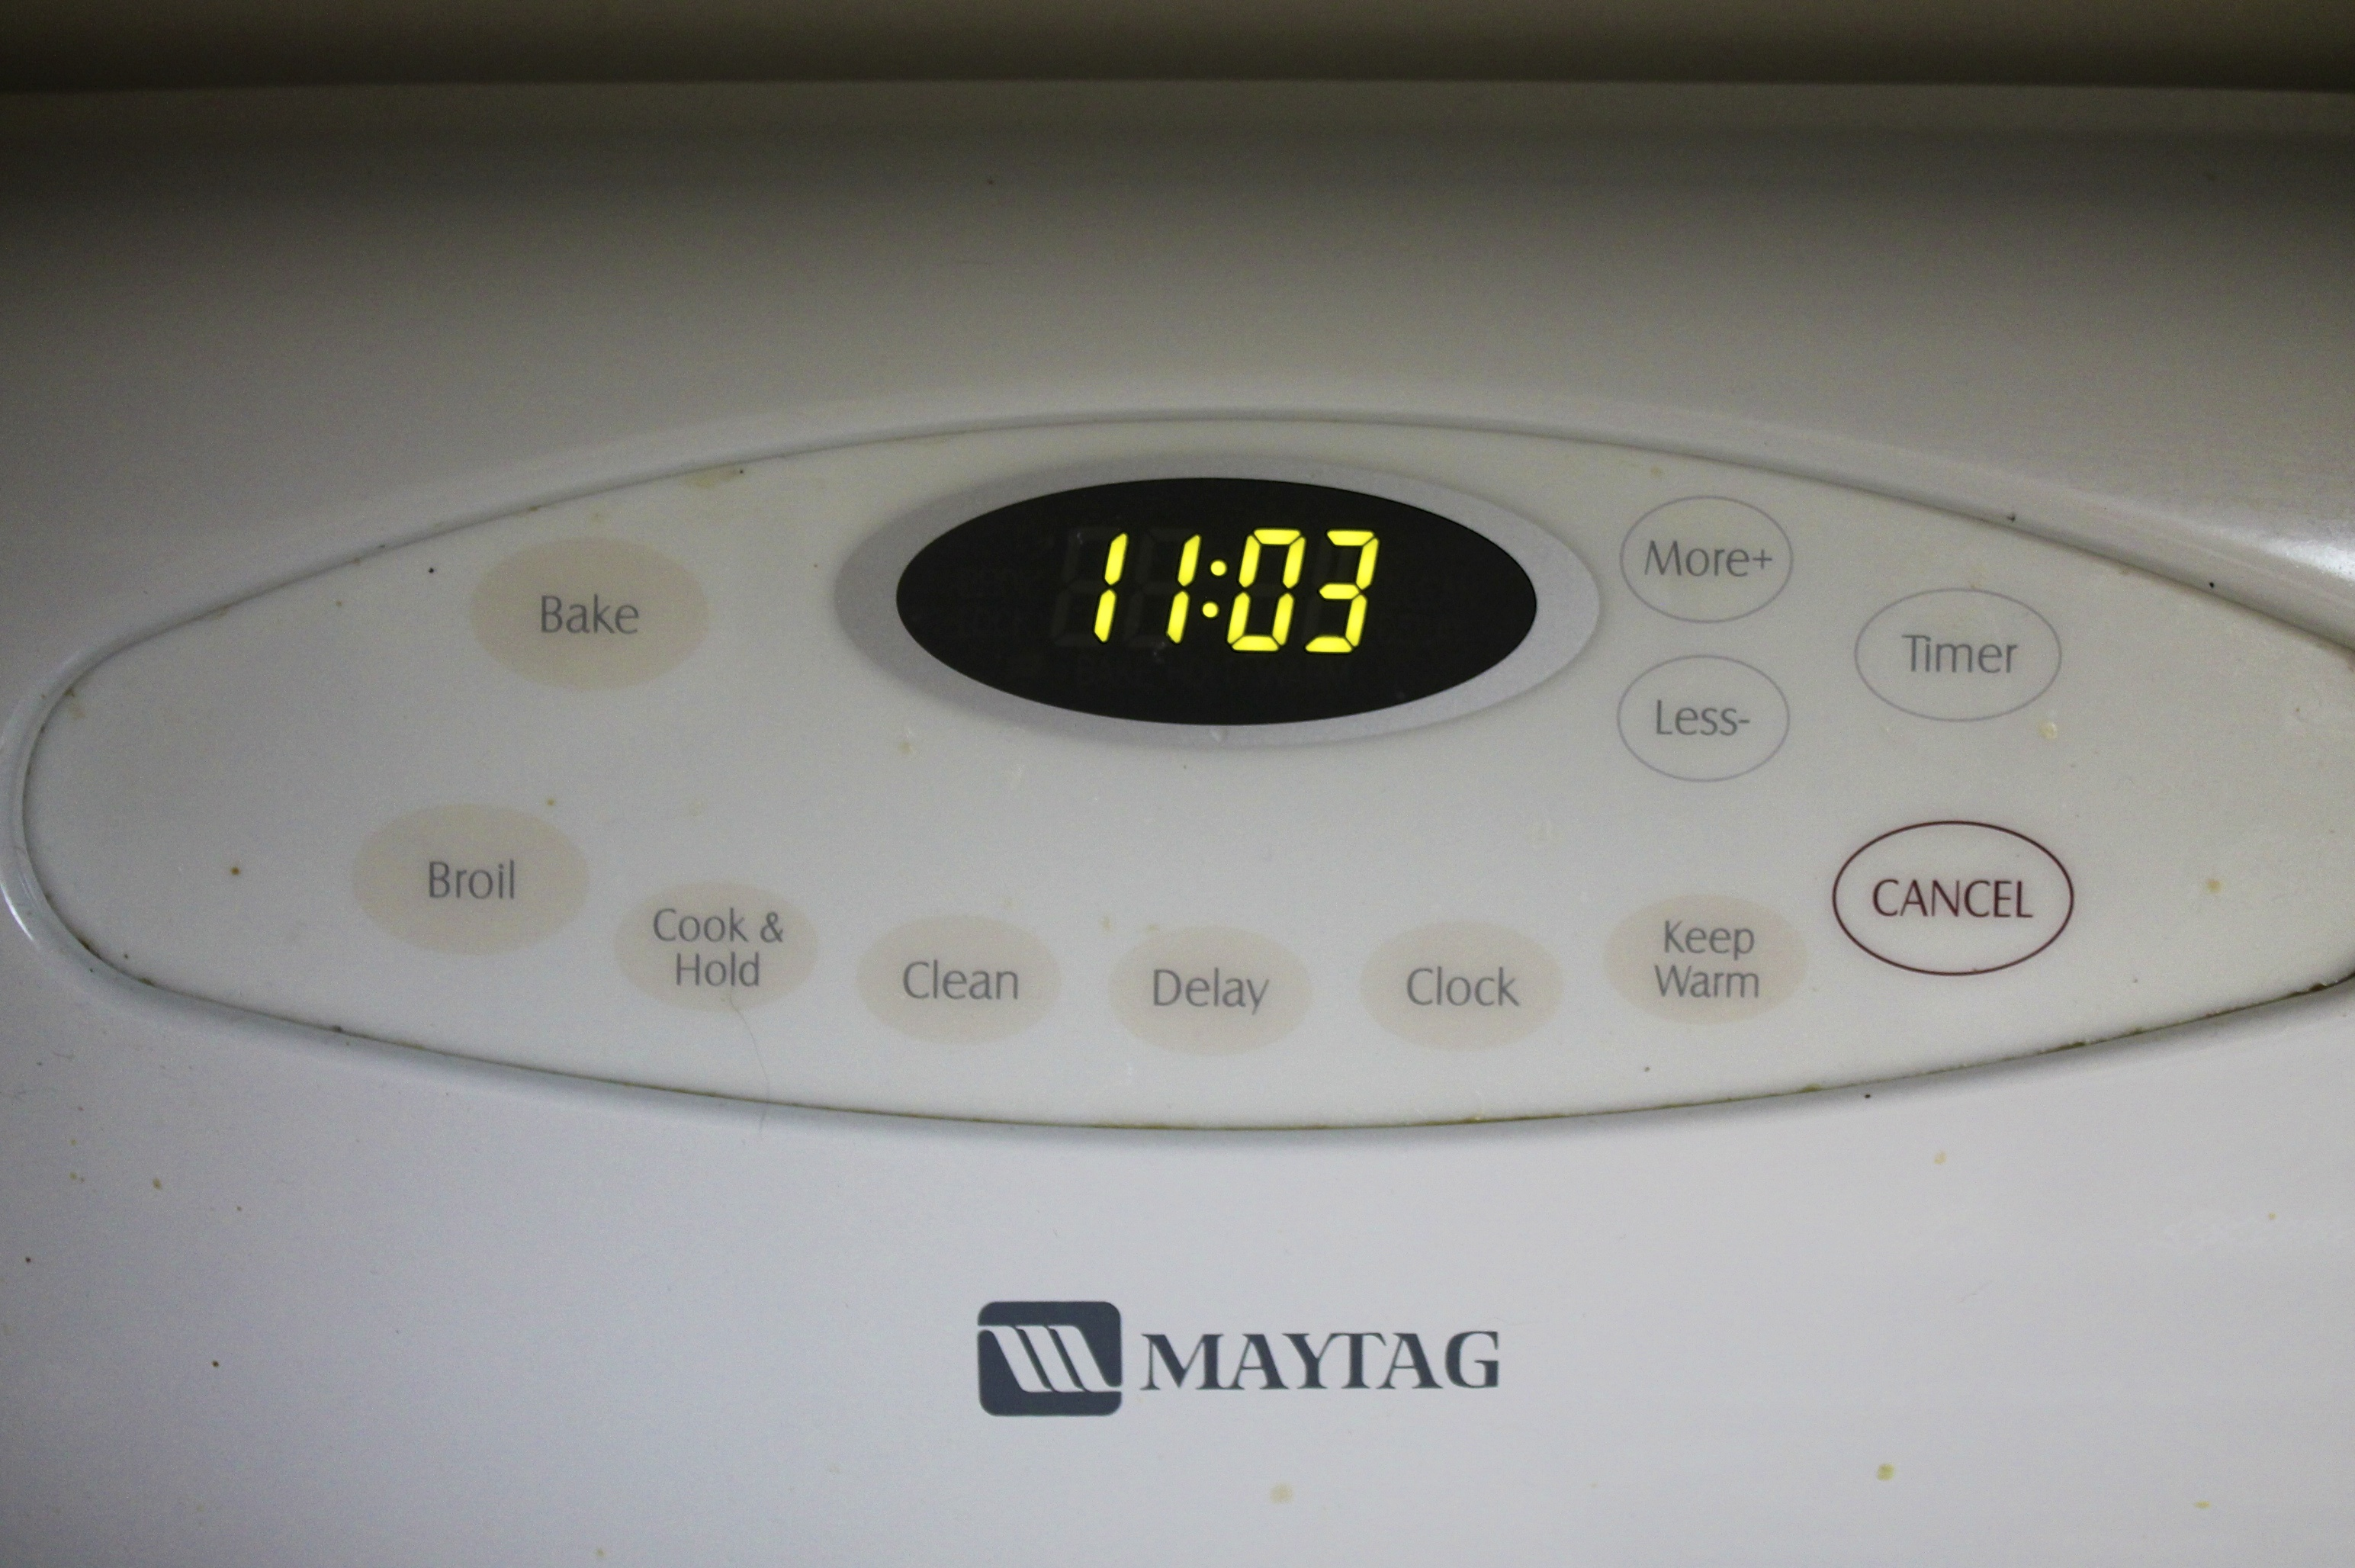 How to clean maytag oven door glass door panel maytag ranges ovens images the only pic was http allmygoodthings com wp conten 7 img 2548 jpg eventelaan Gallery